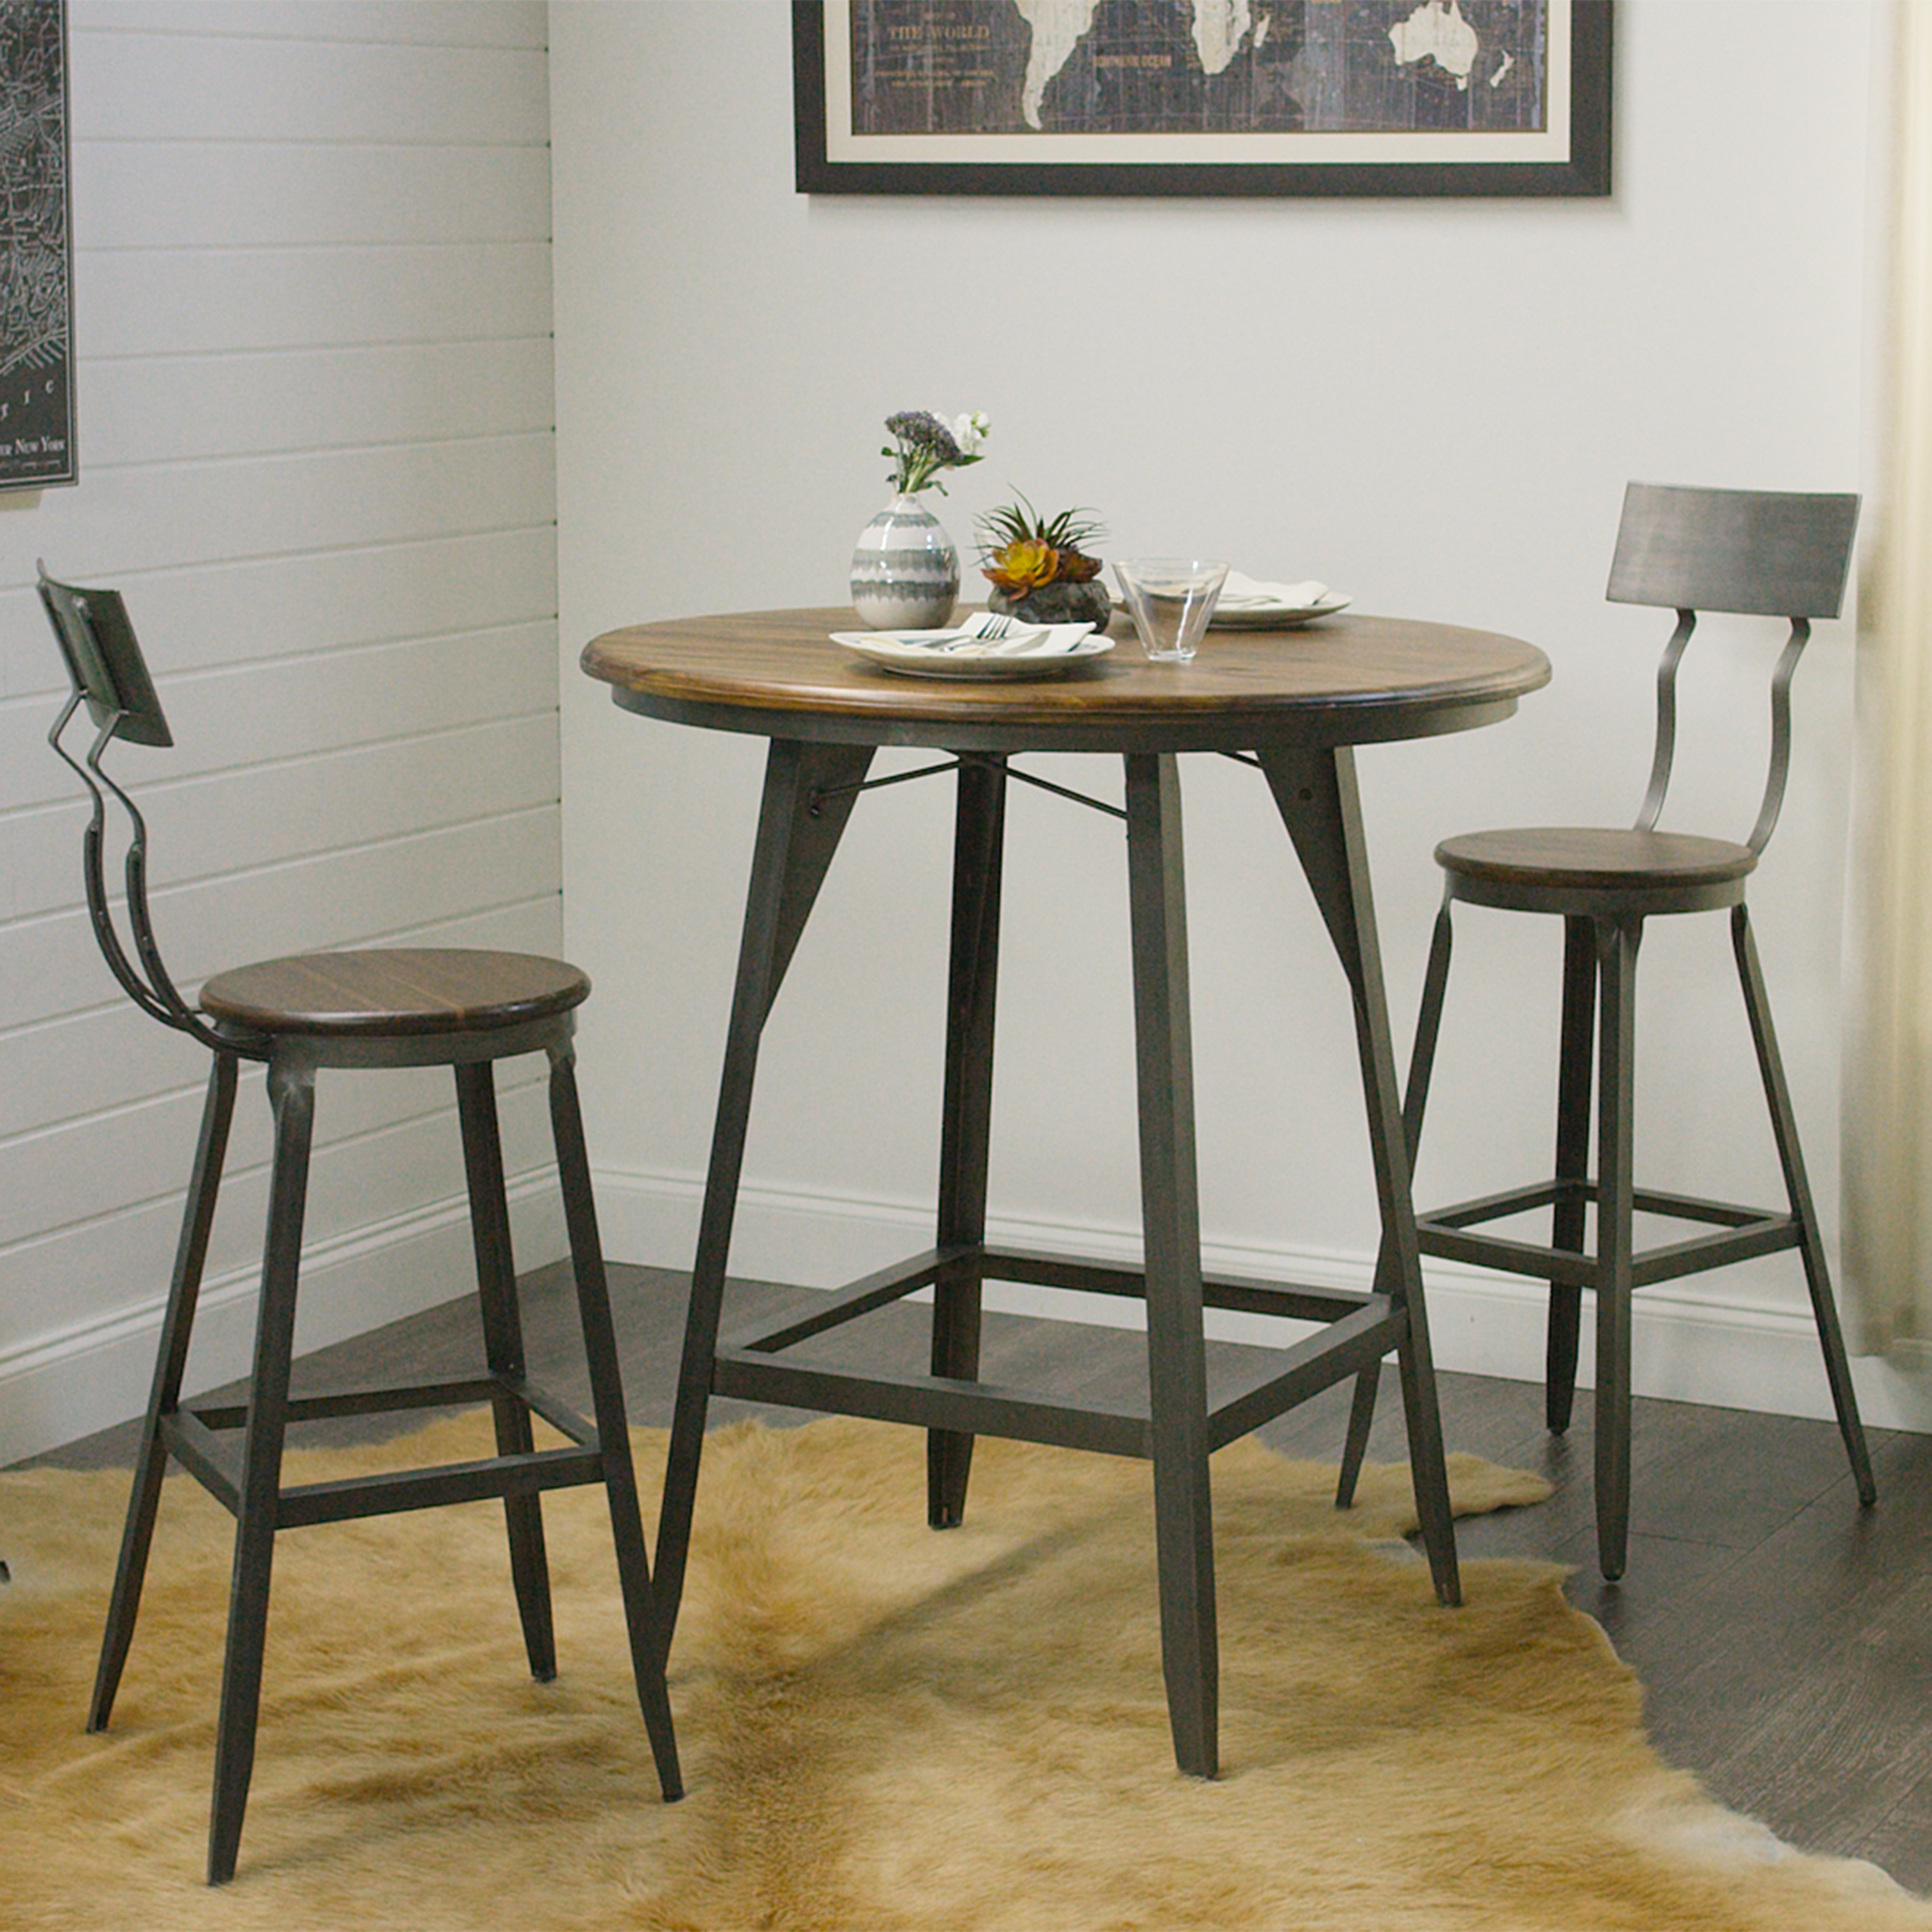 Furniture: World Market Bar Stools With Back Also Round Dining Table Within Recent Market 5 Piece Counter Sets (Image 12 of 20)